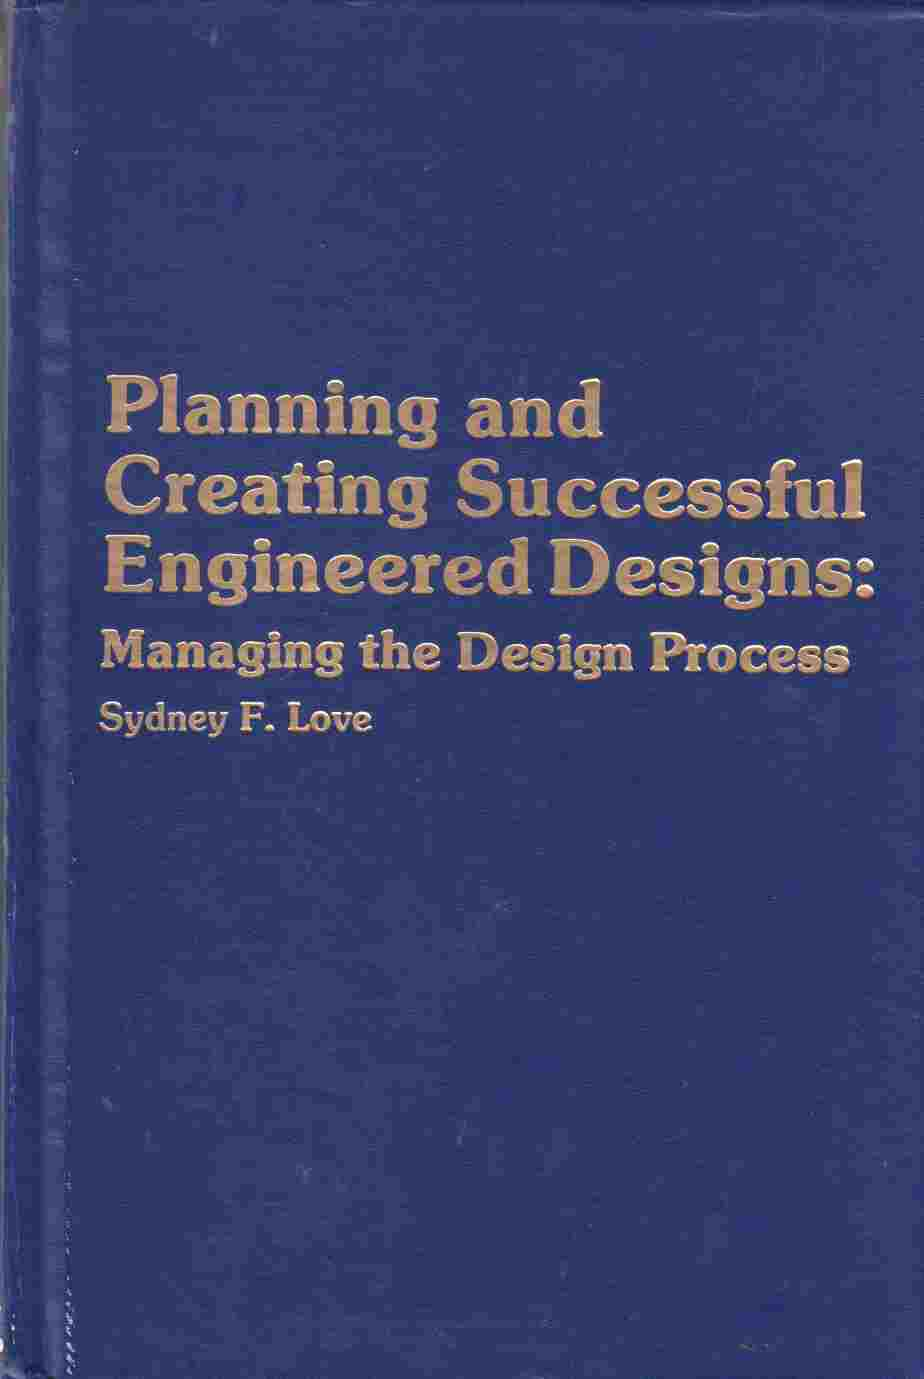 Image for Planning and Creating Successful Engineered Designs